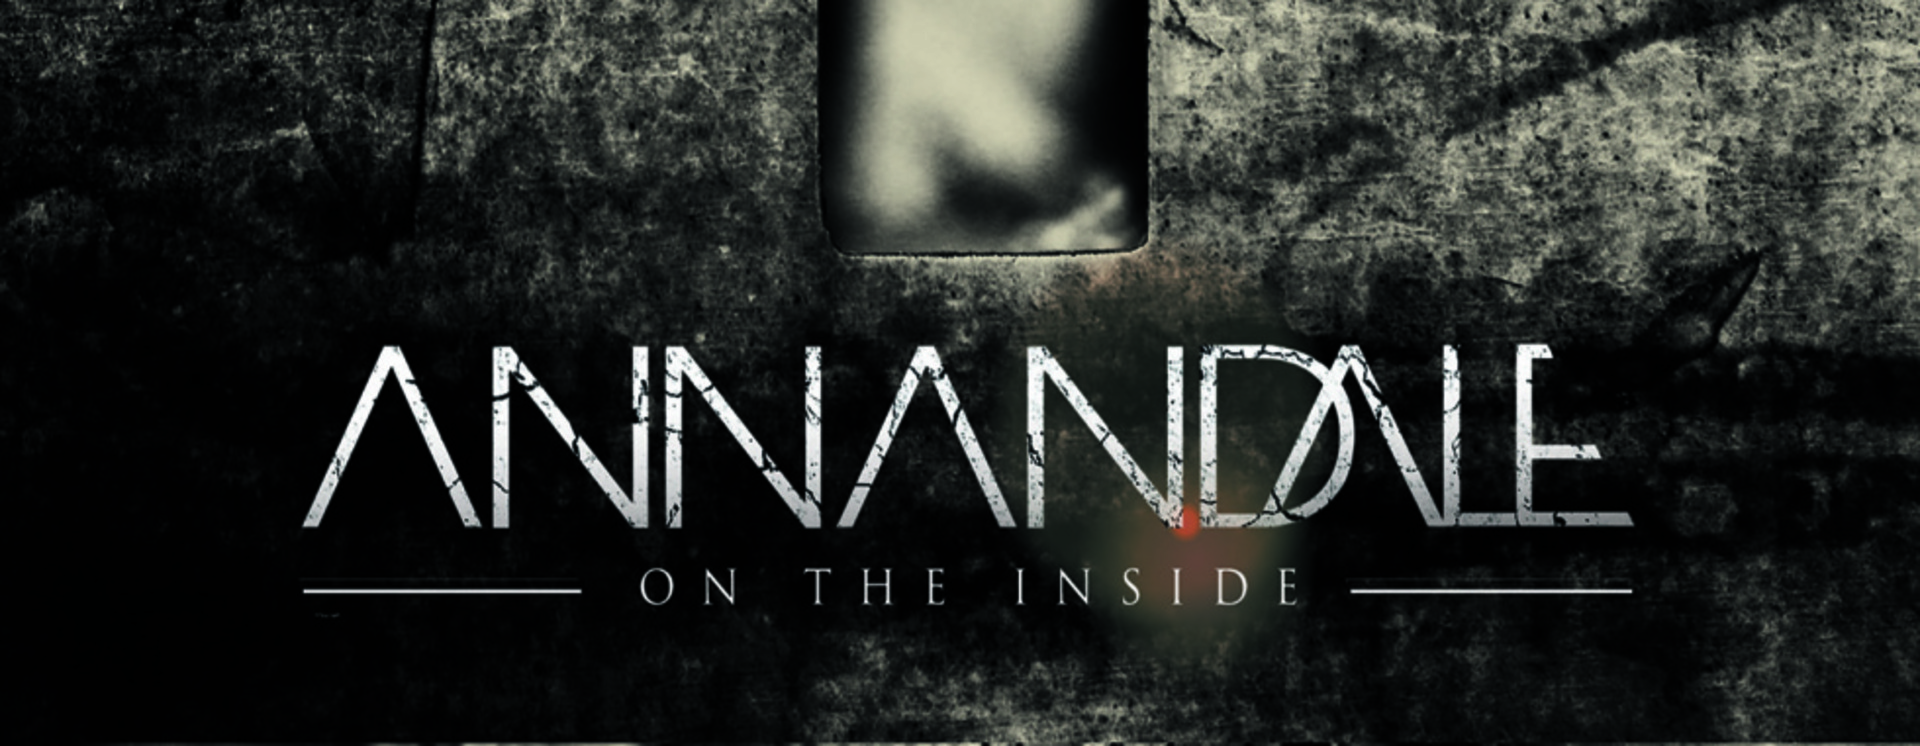 1412025077 ontheinside cover 1600 copy